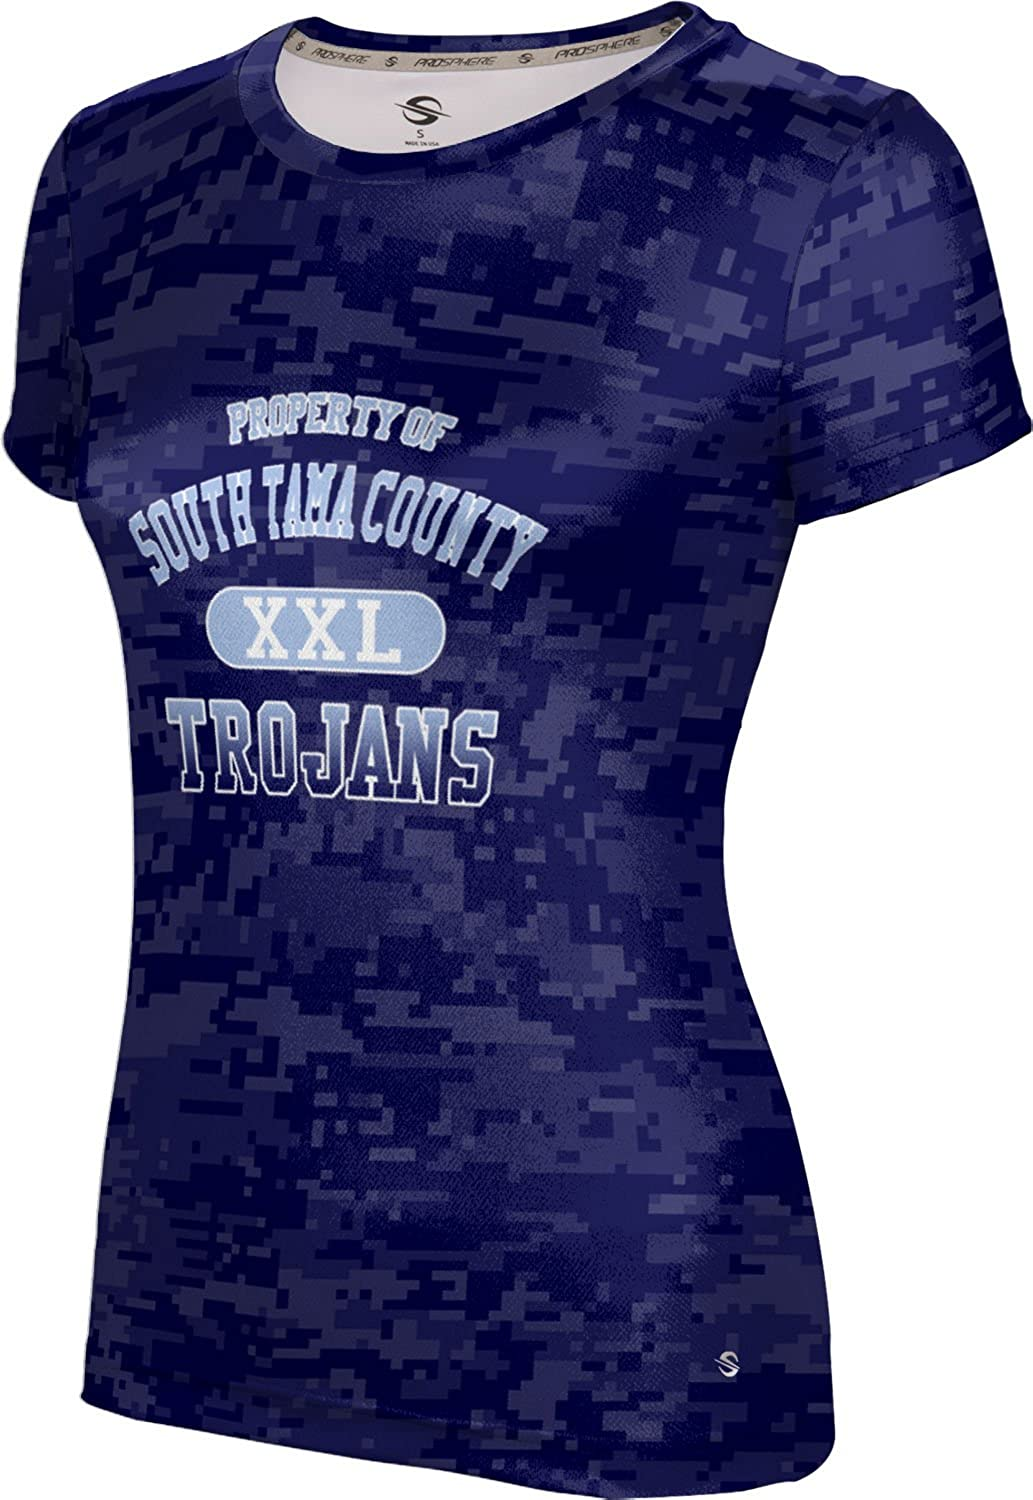 ProSphere Women's South Tama County High School Digital Tech Tee